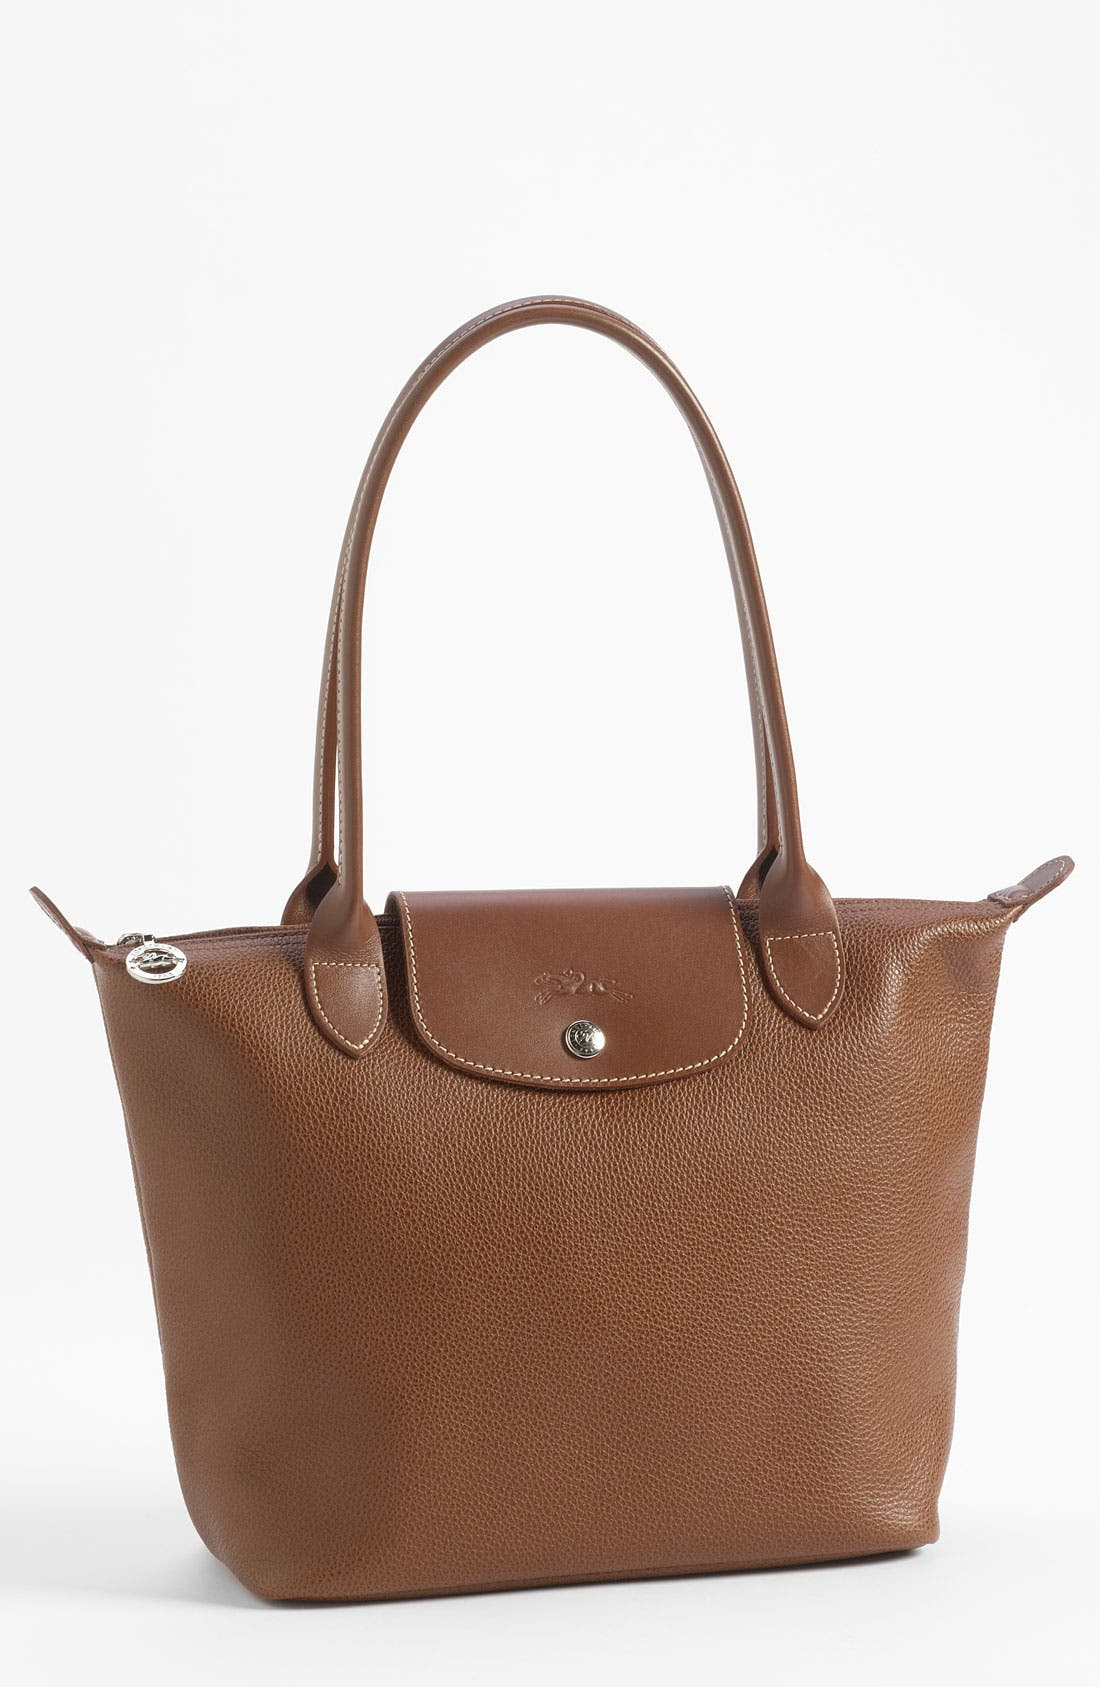 Main Image - Longchamp 'Veau  Fouloneé' Shoulder Bag (Nordstrom Exclusive)